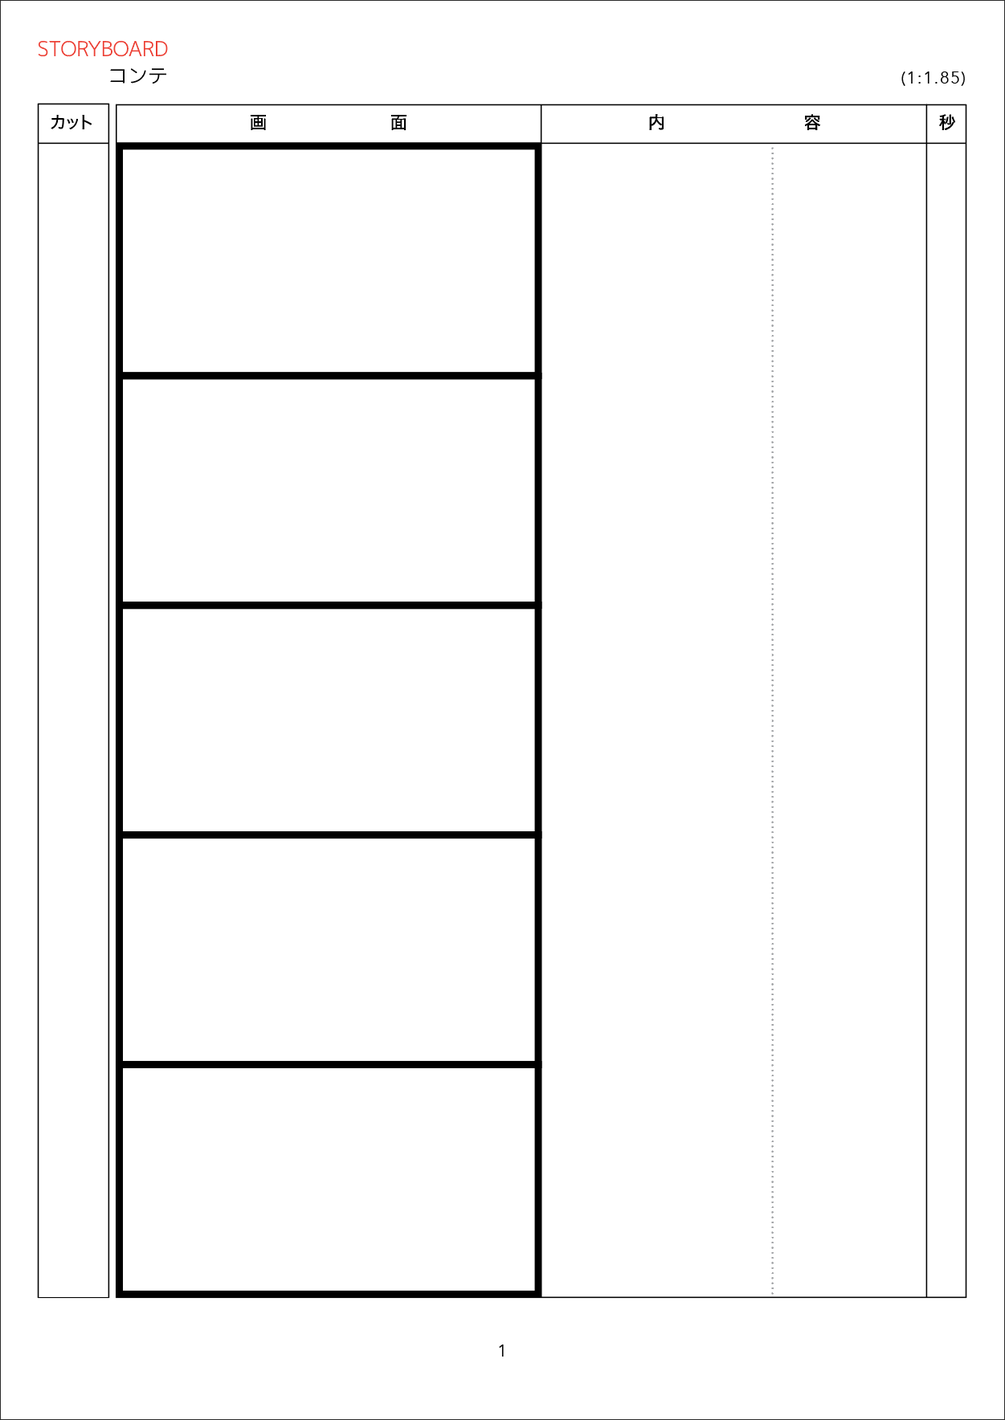 This Is An Anime Storyboard Template For Din A4 Vertical Portrait Page Ready To Use You Can Edit The Idml File Right Away In Adobe Indesign